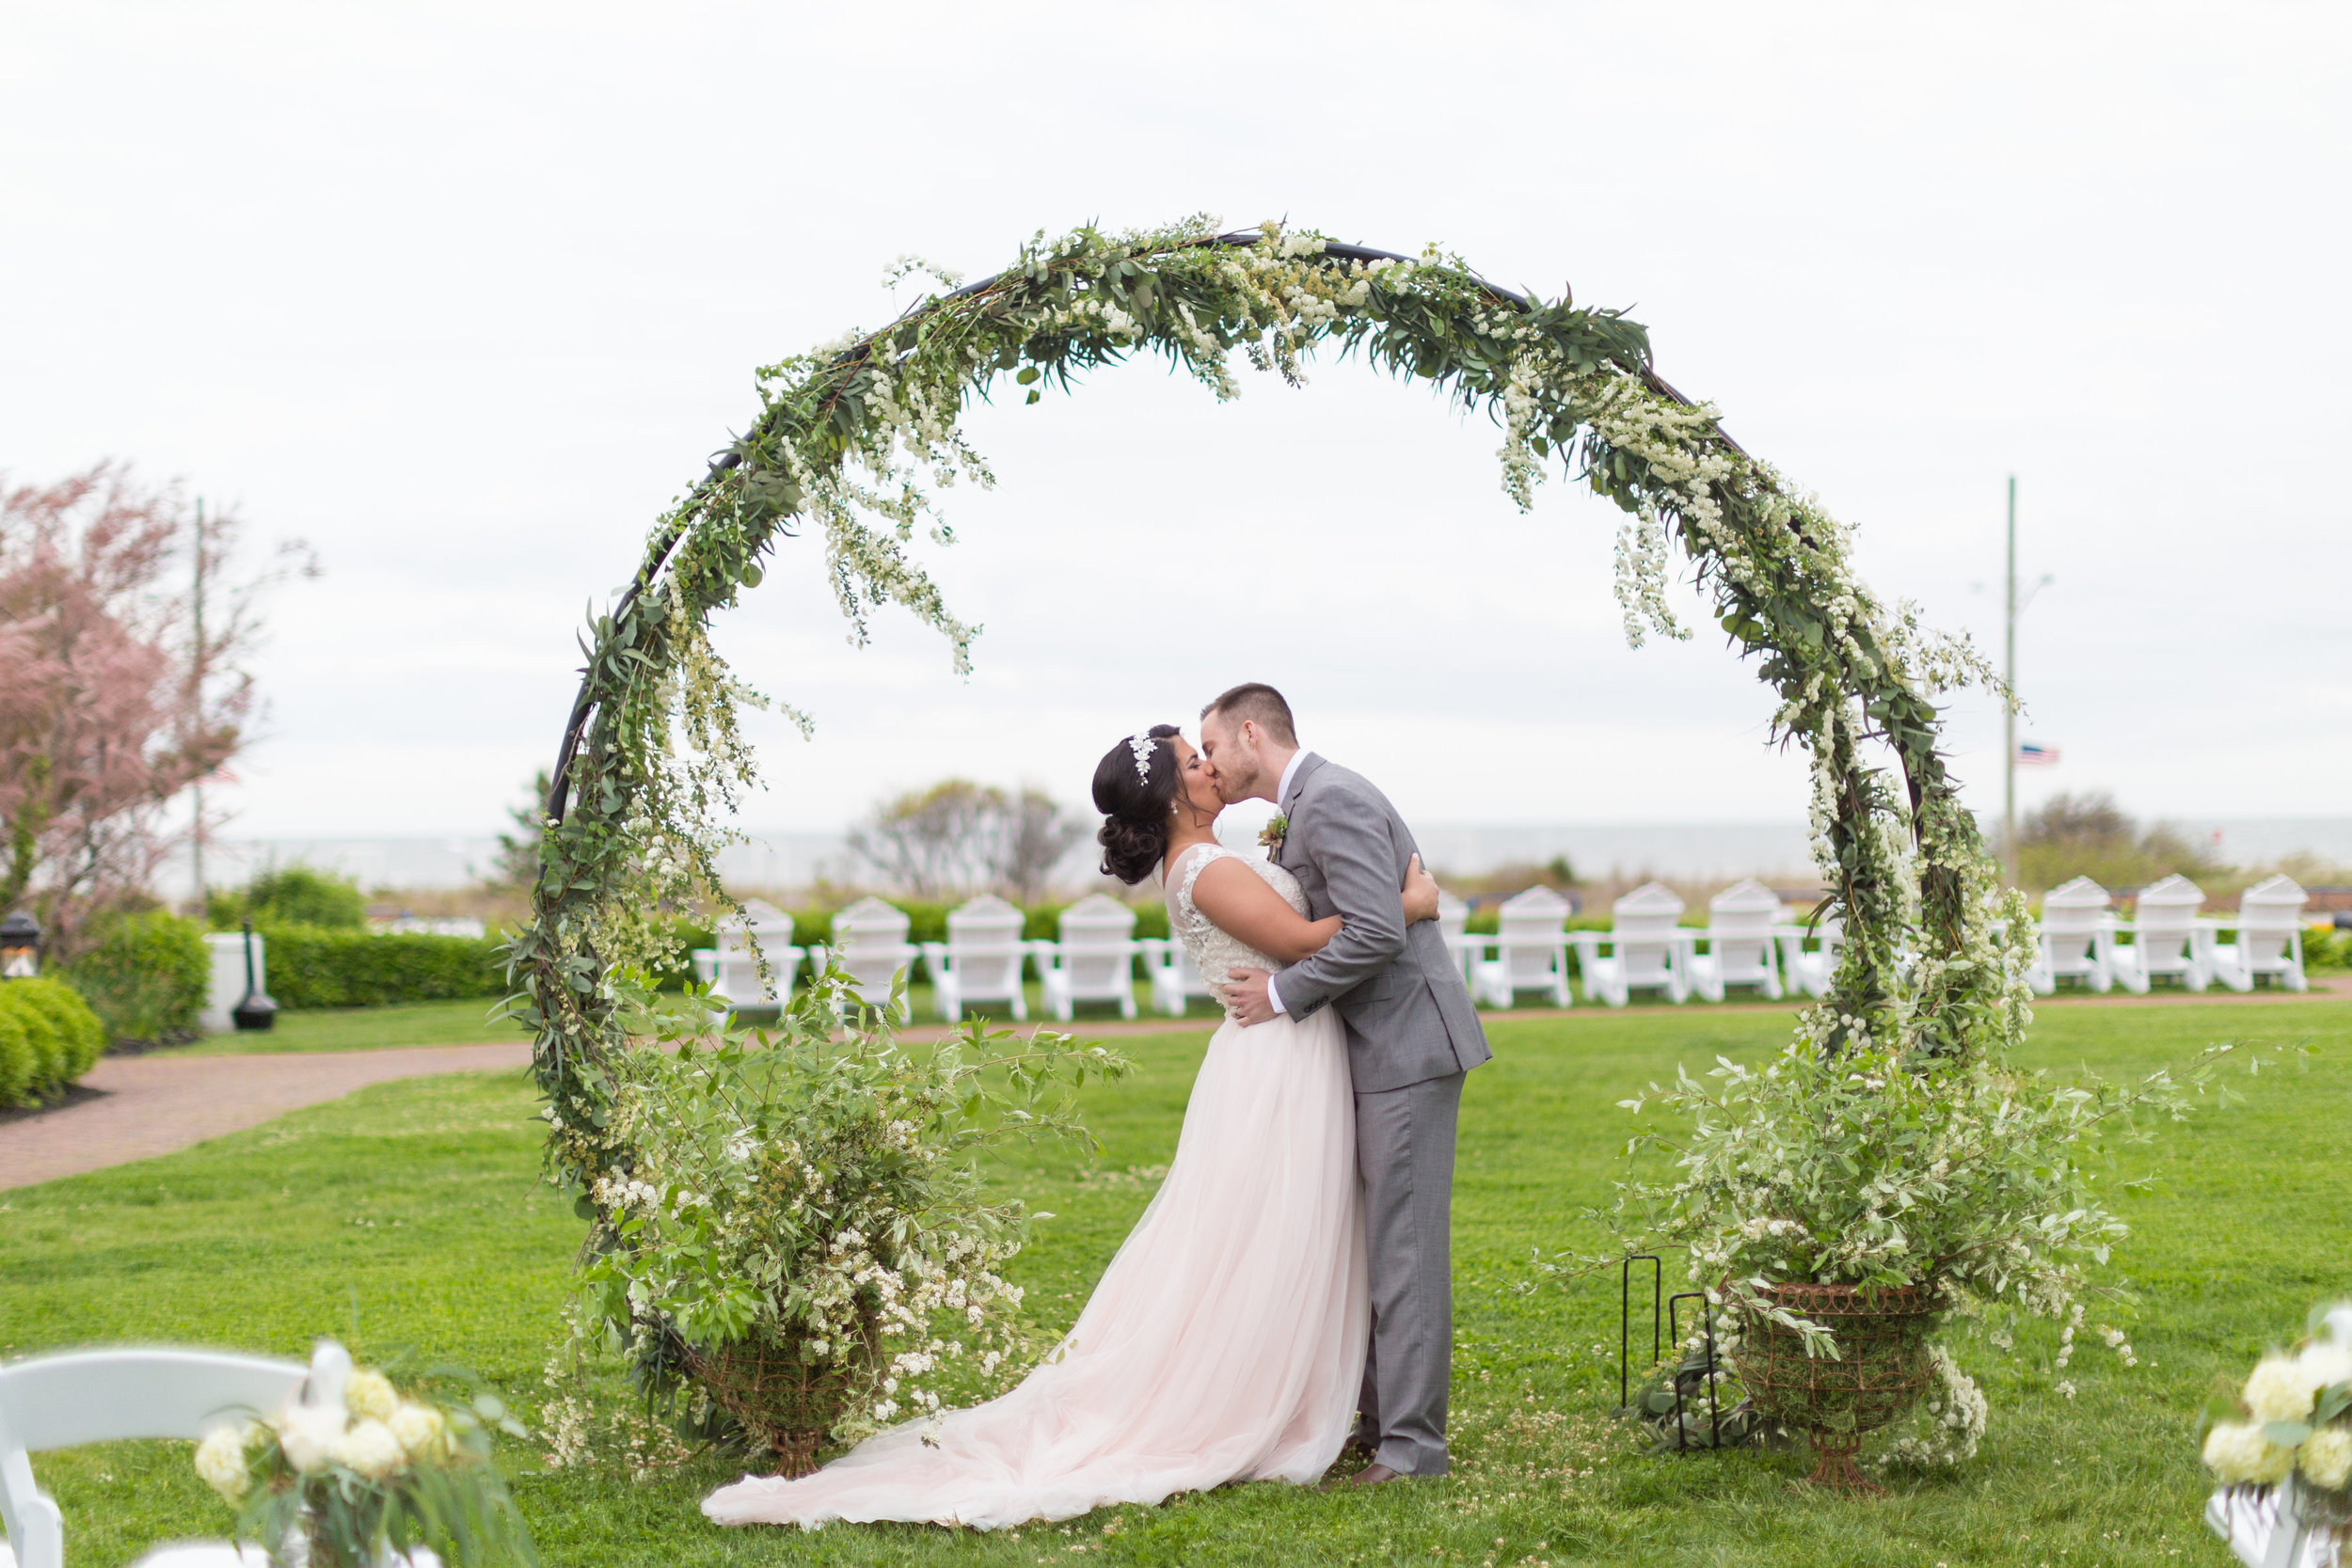 circle arch ceremony piece by A Garden Party florist at Congress Hall